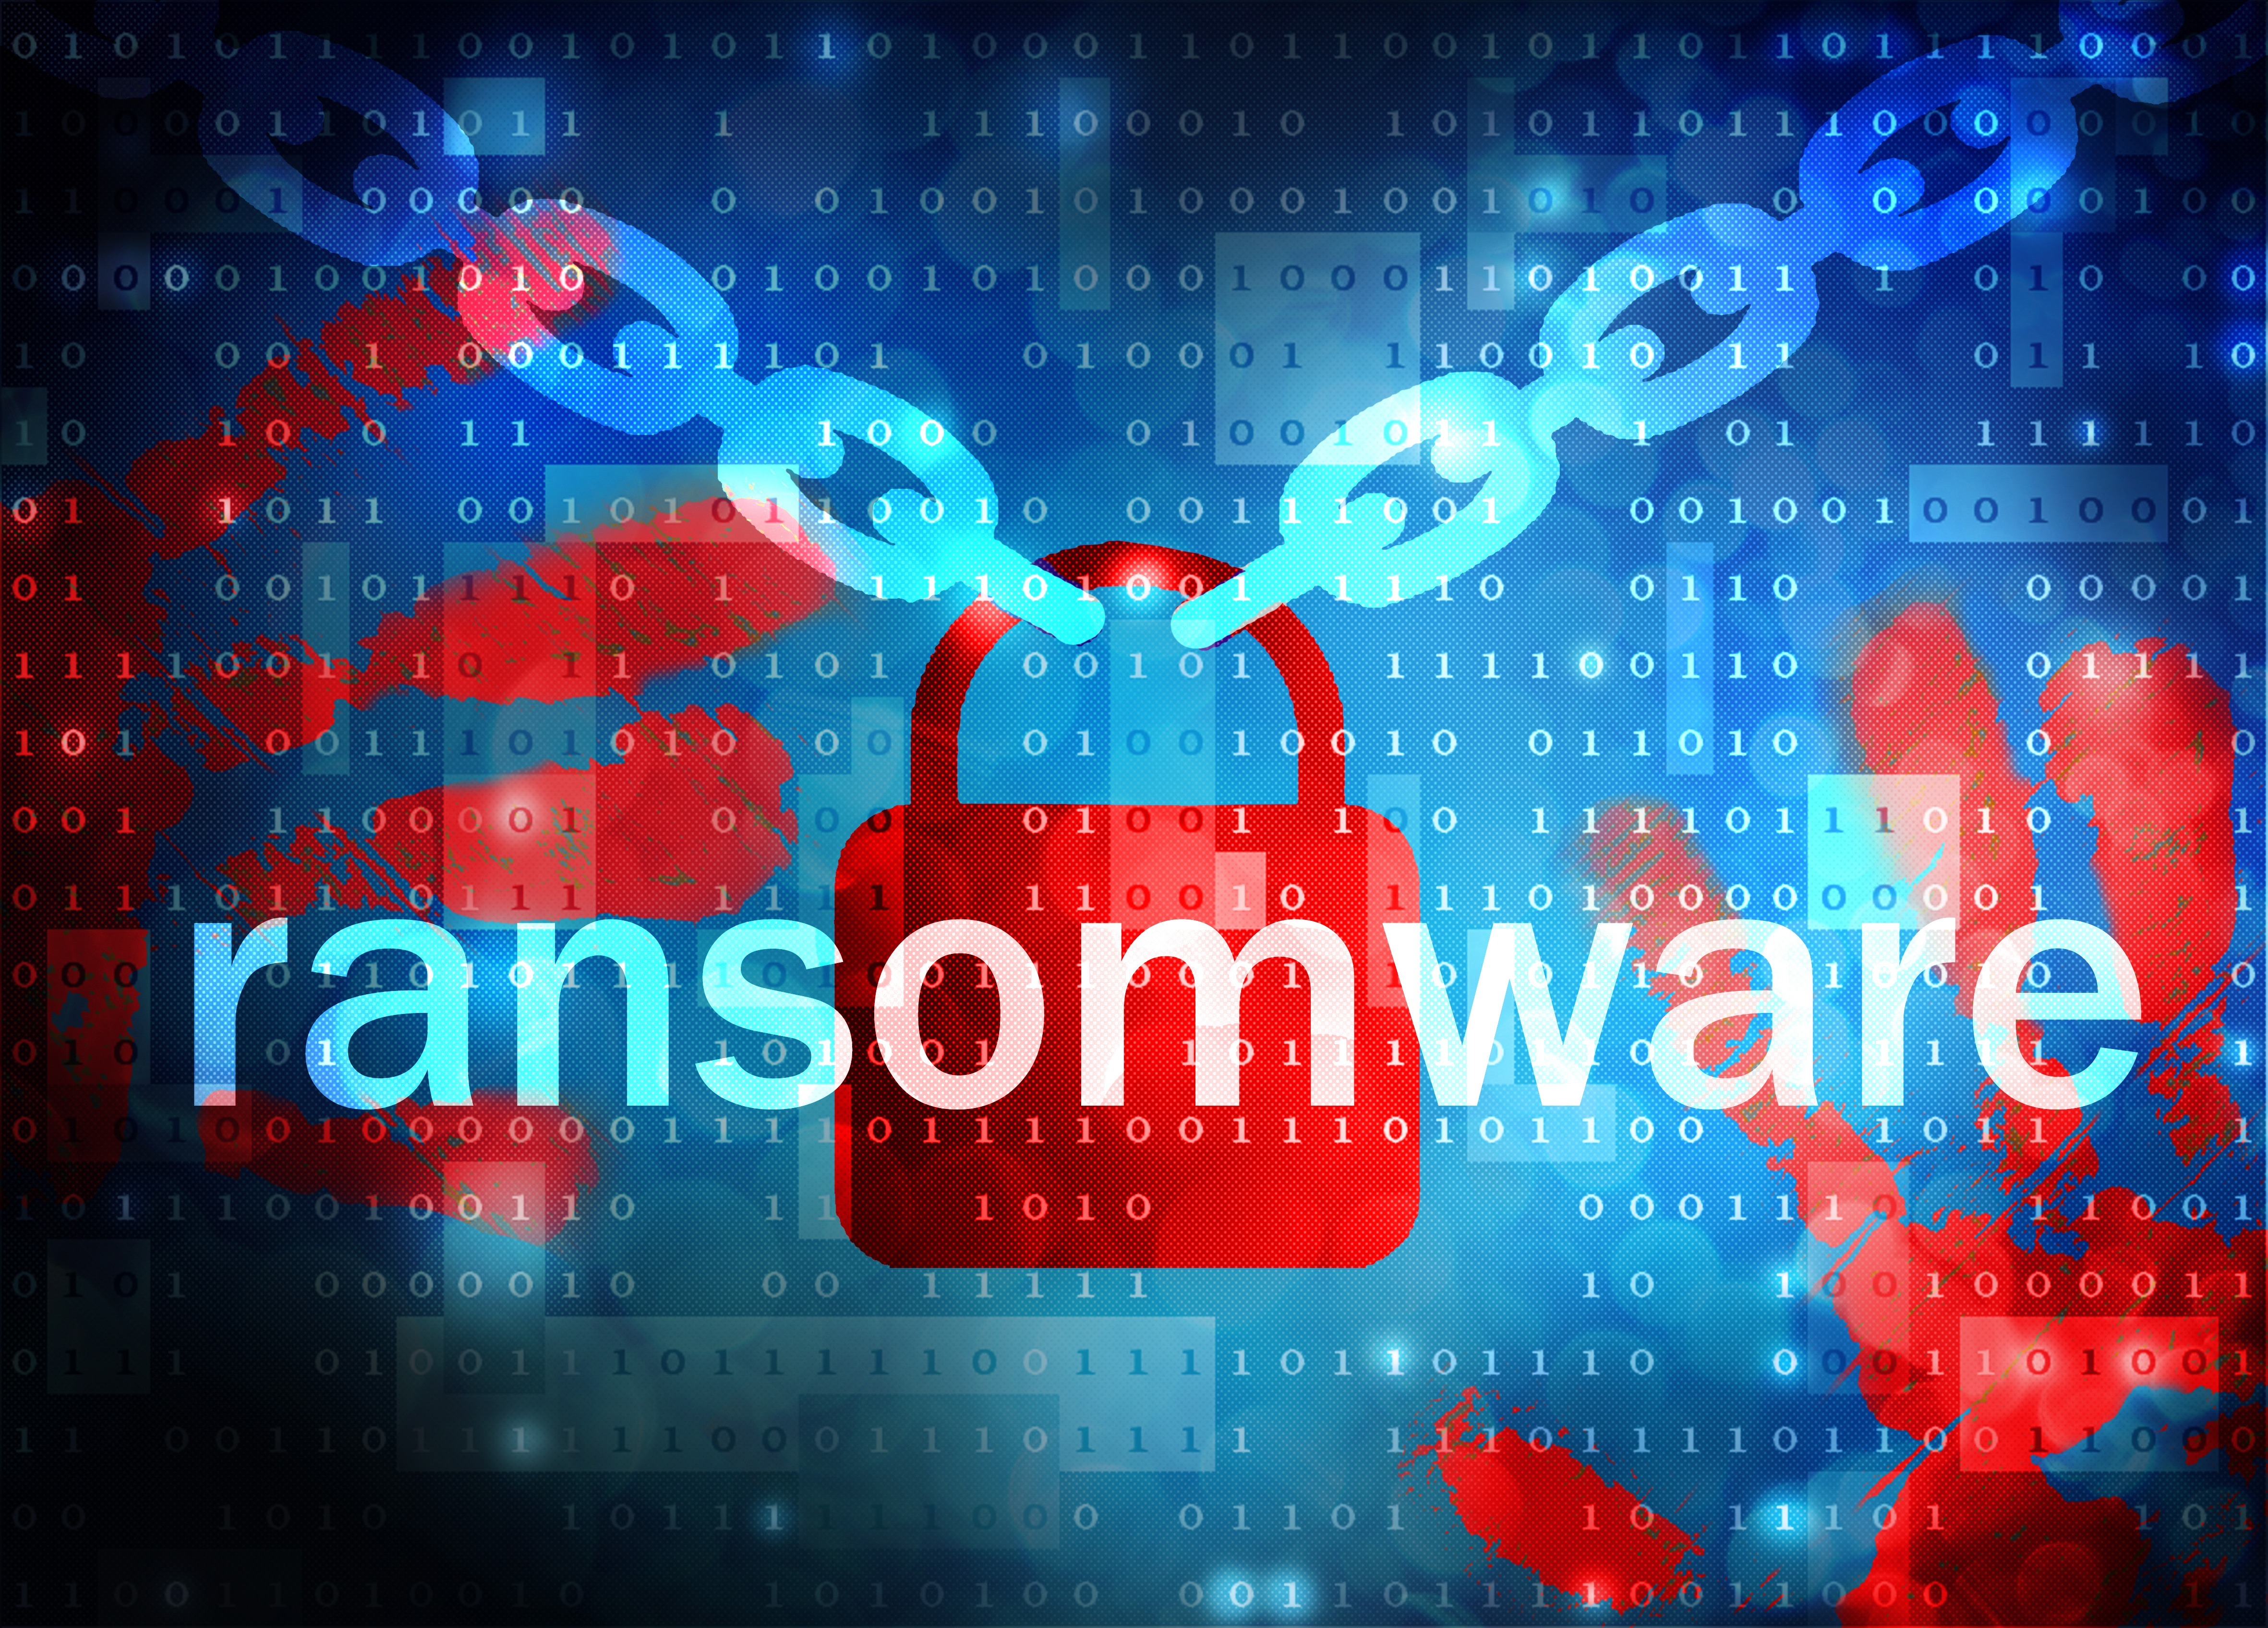 Ransomware, Cyber crime, Cyber threats, Data Breach, Hacking, Pension Ransomware, Data theft